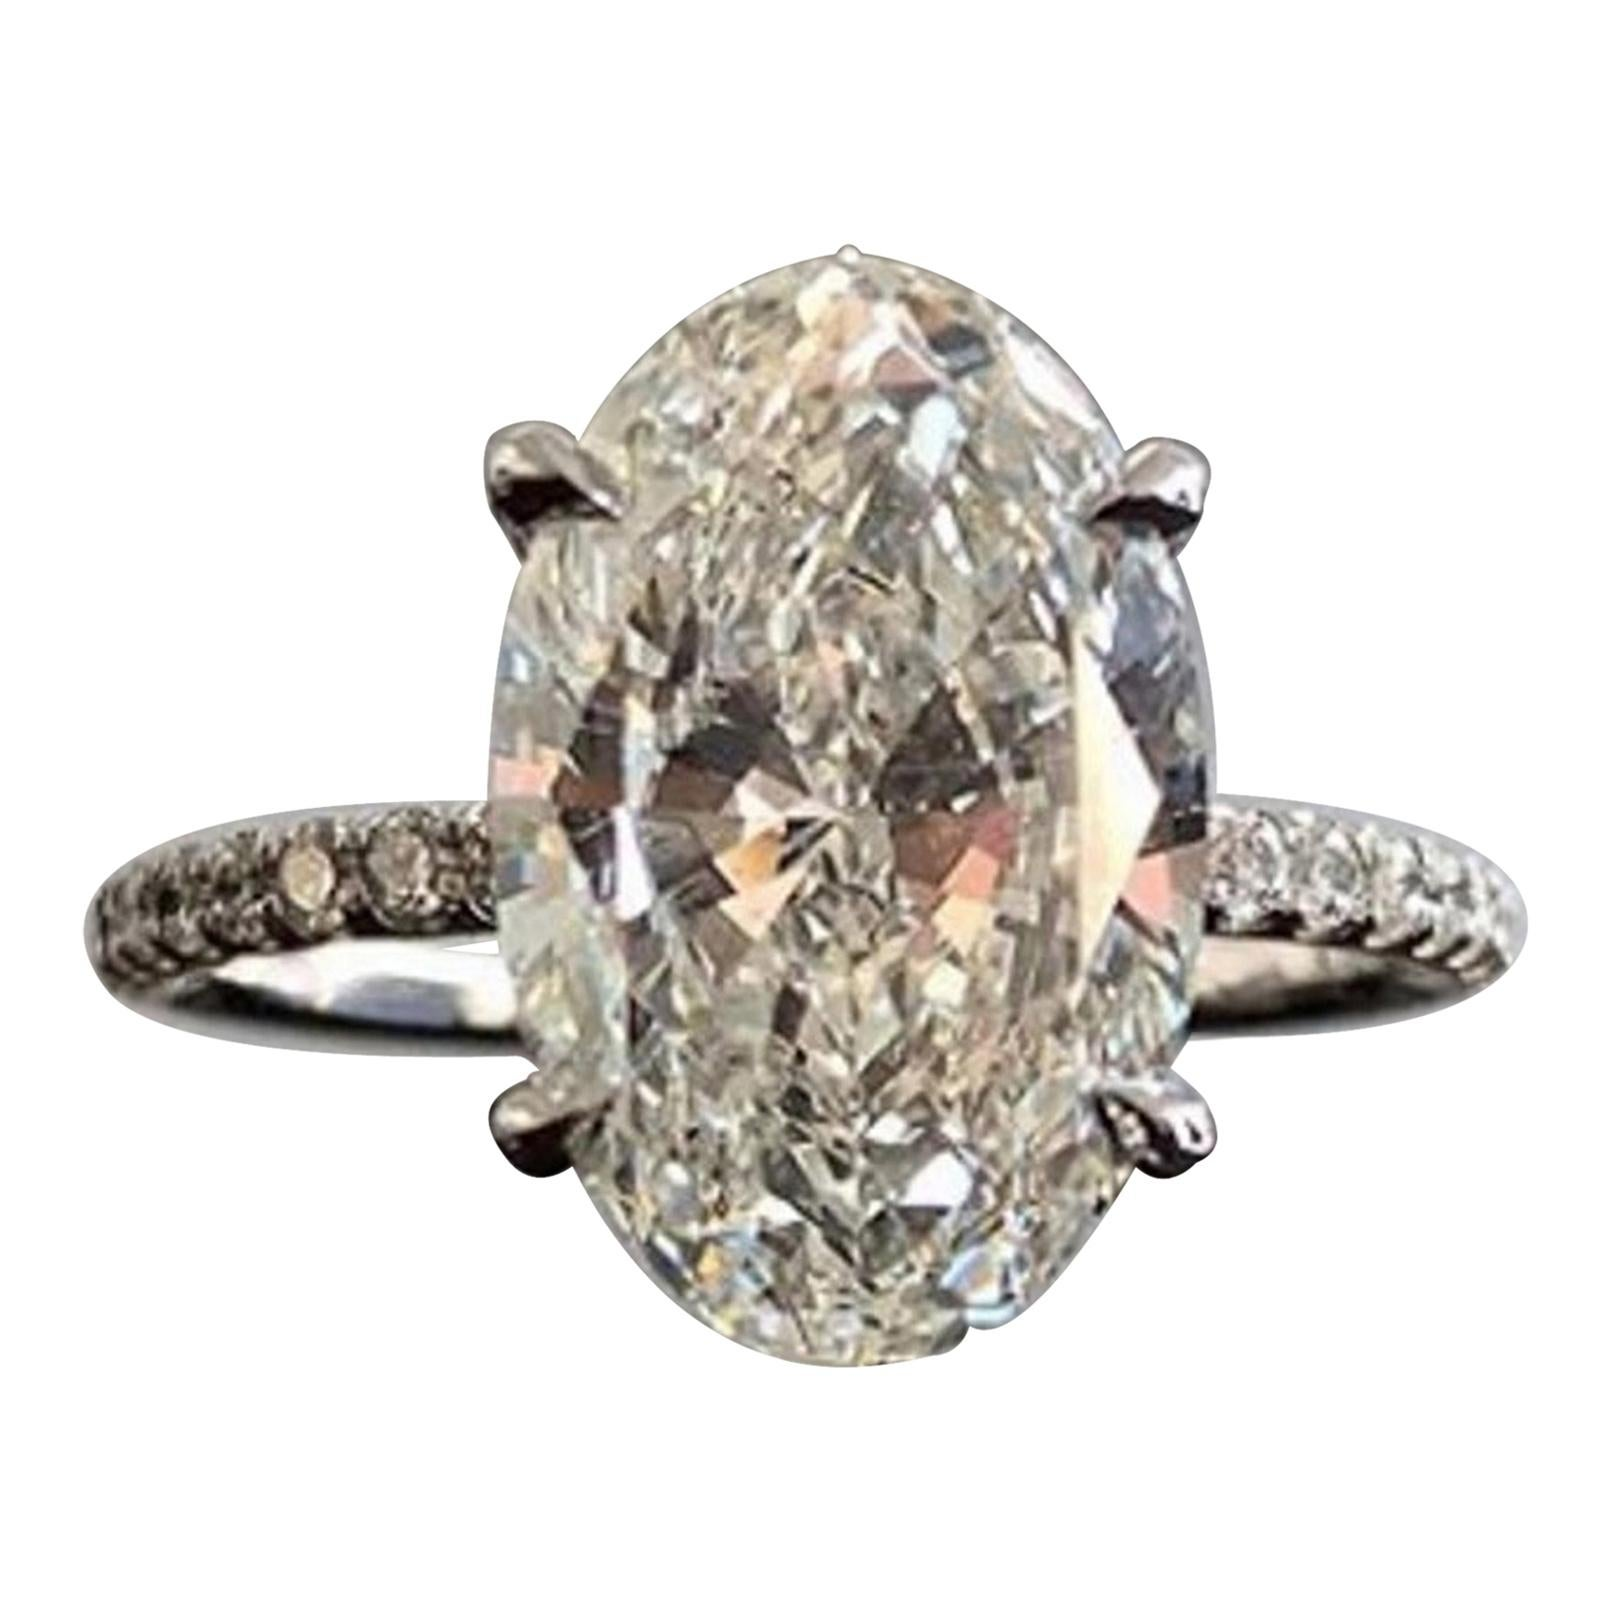 GIA Certified 6.50 Carat Oval Diamond Ring